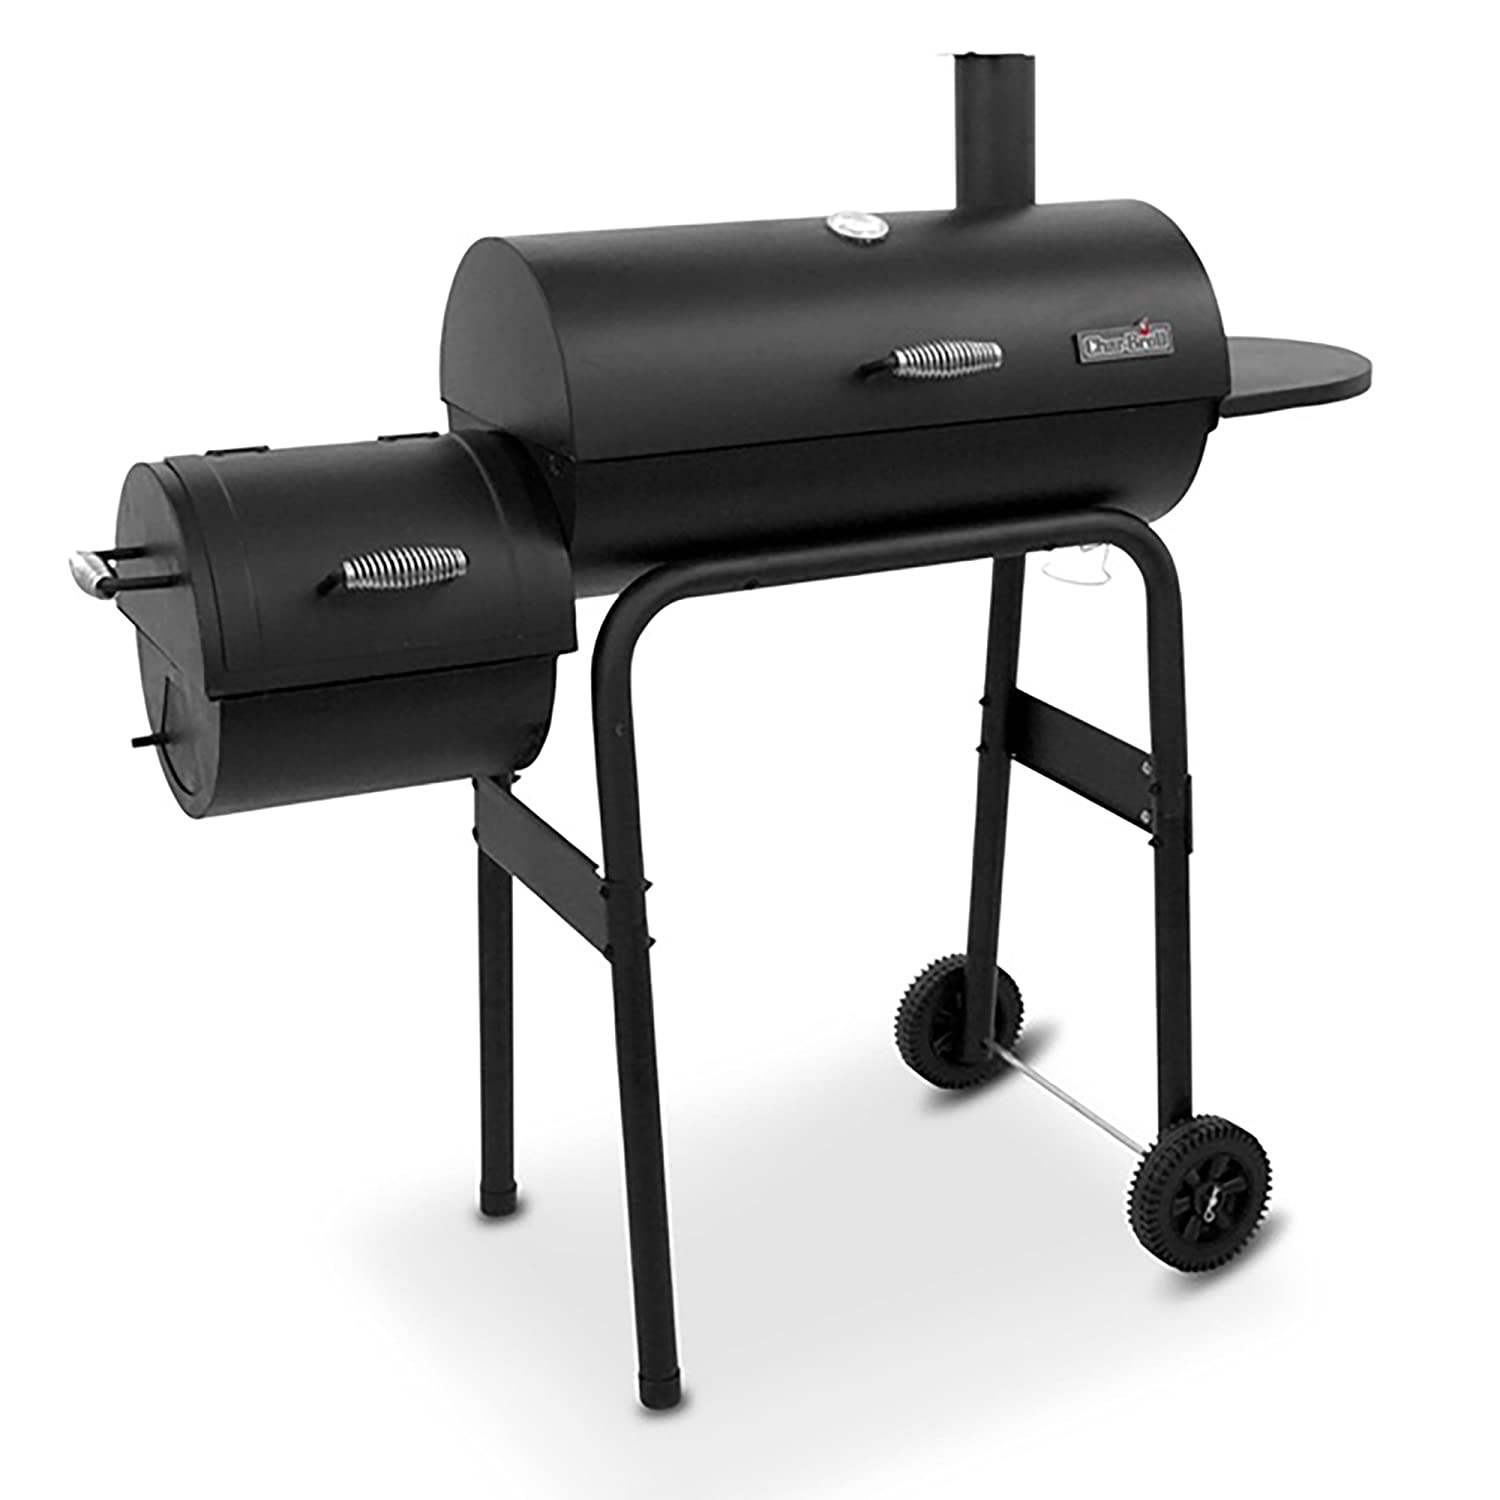 Top 5 Best Offset Smokers under $500 (Reviews in 2020) 1